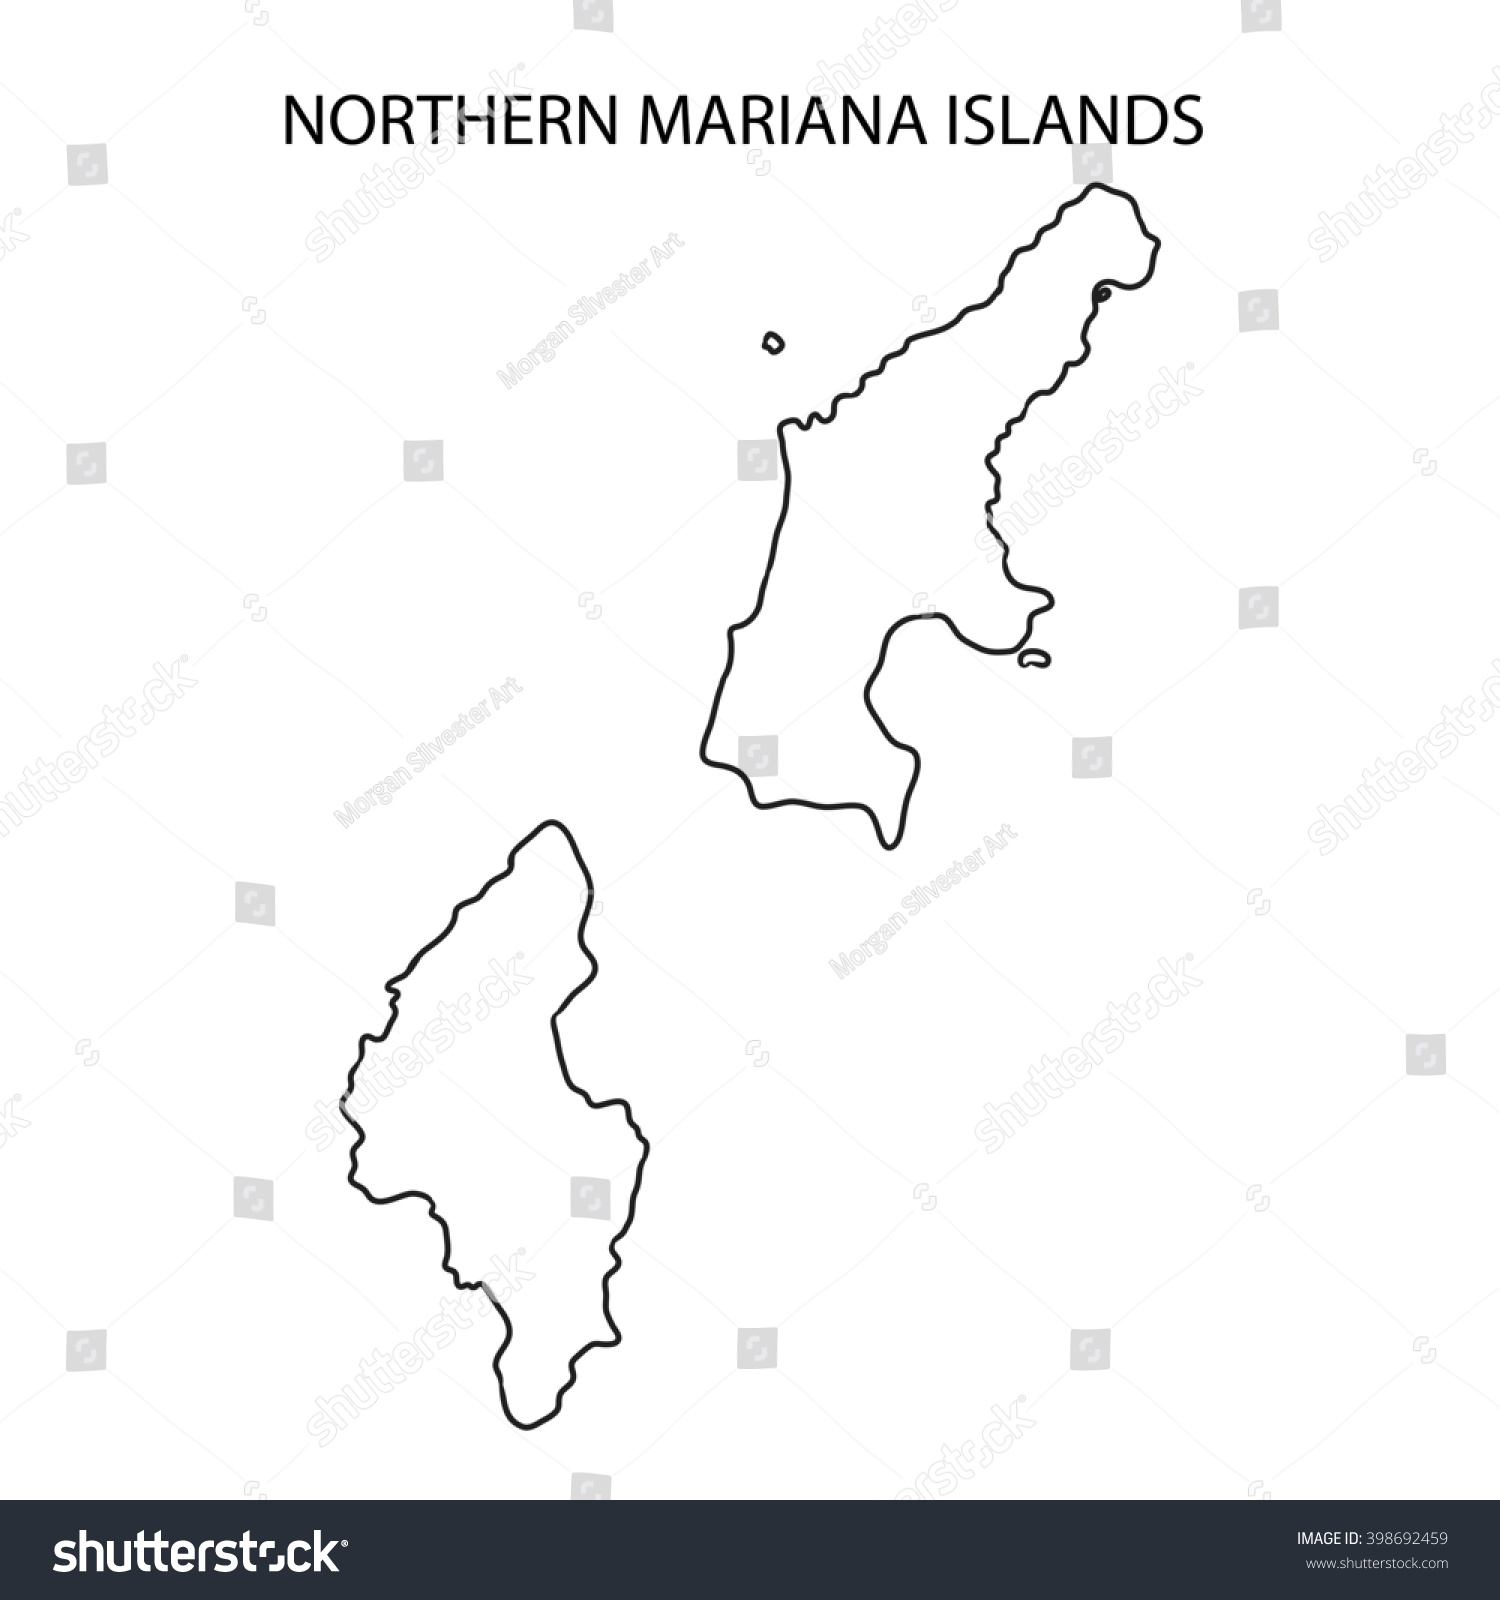 Northern Mariana Islands Map Outline Stock Illustration 398692459 ...